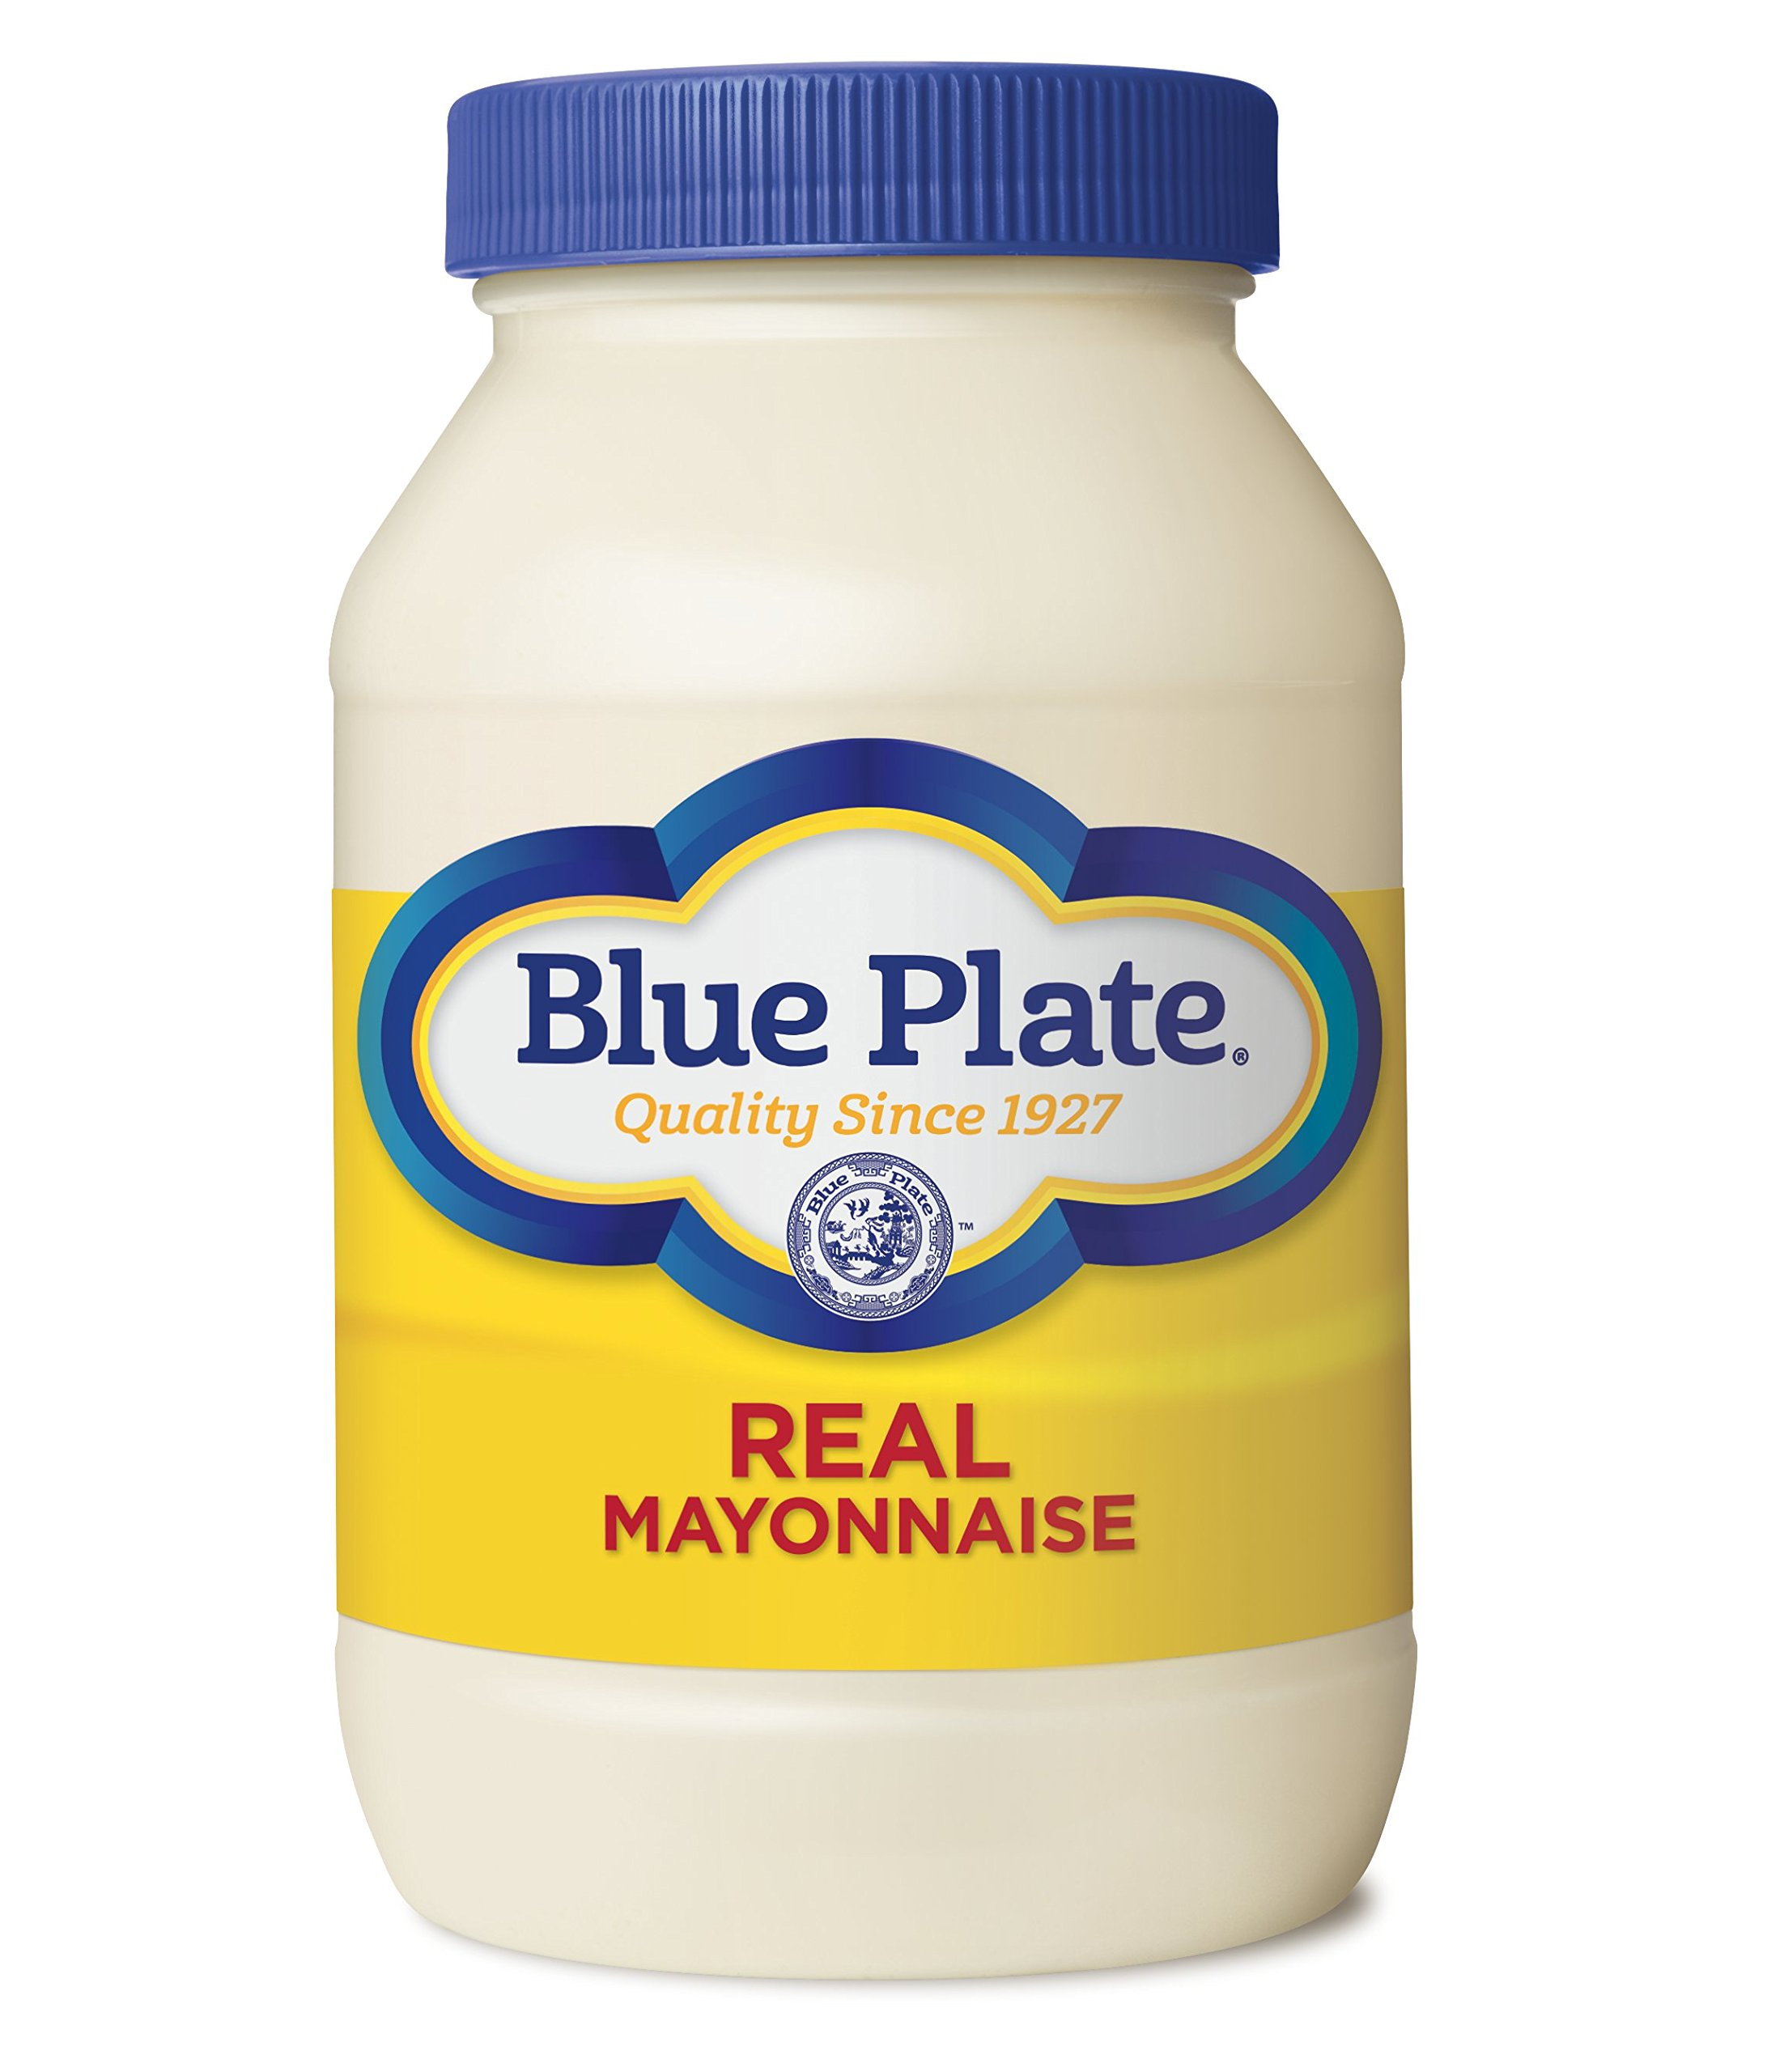 Blue Plate Mayonnaise, 30-Ounce Jars (Pack of 4)